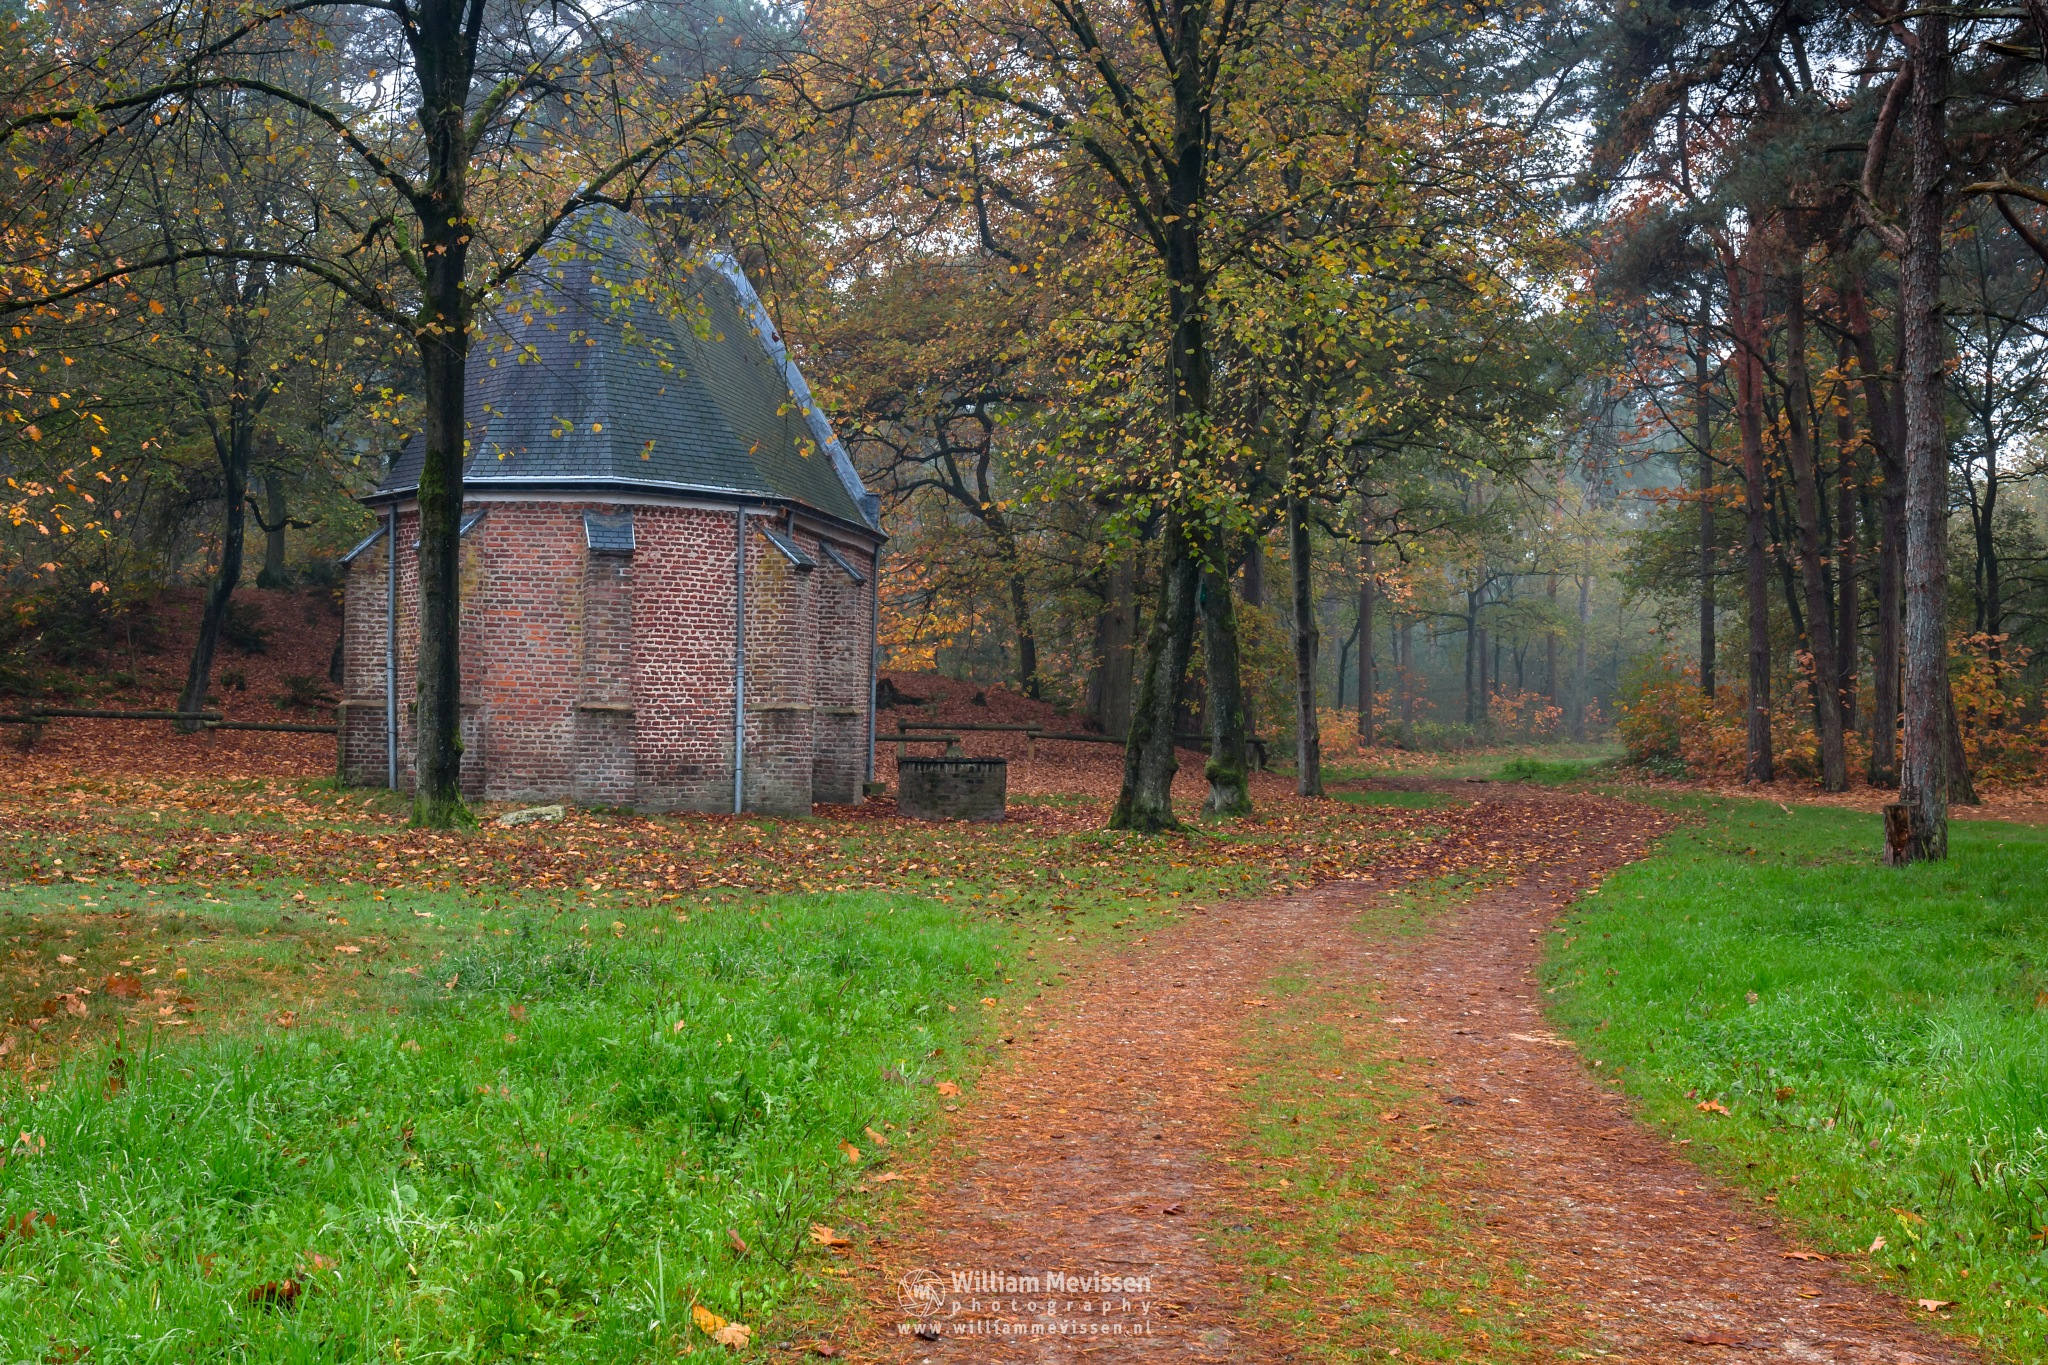 The Chapel In The Forest by William Mevissen